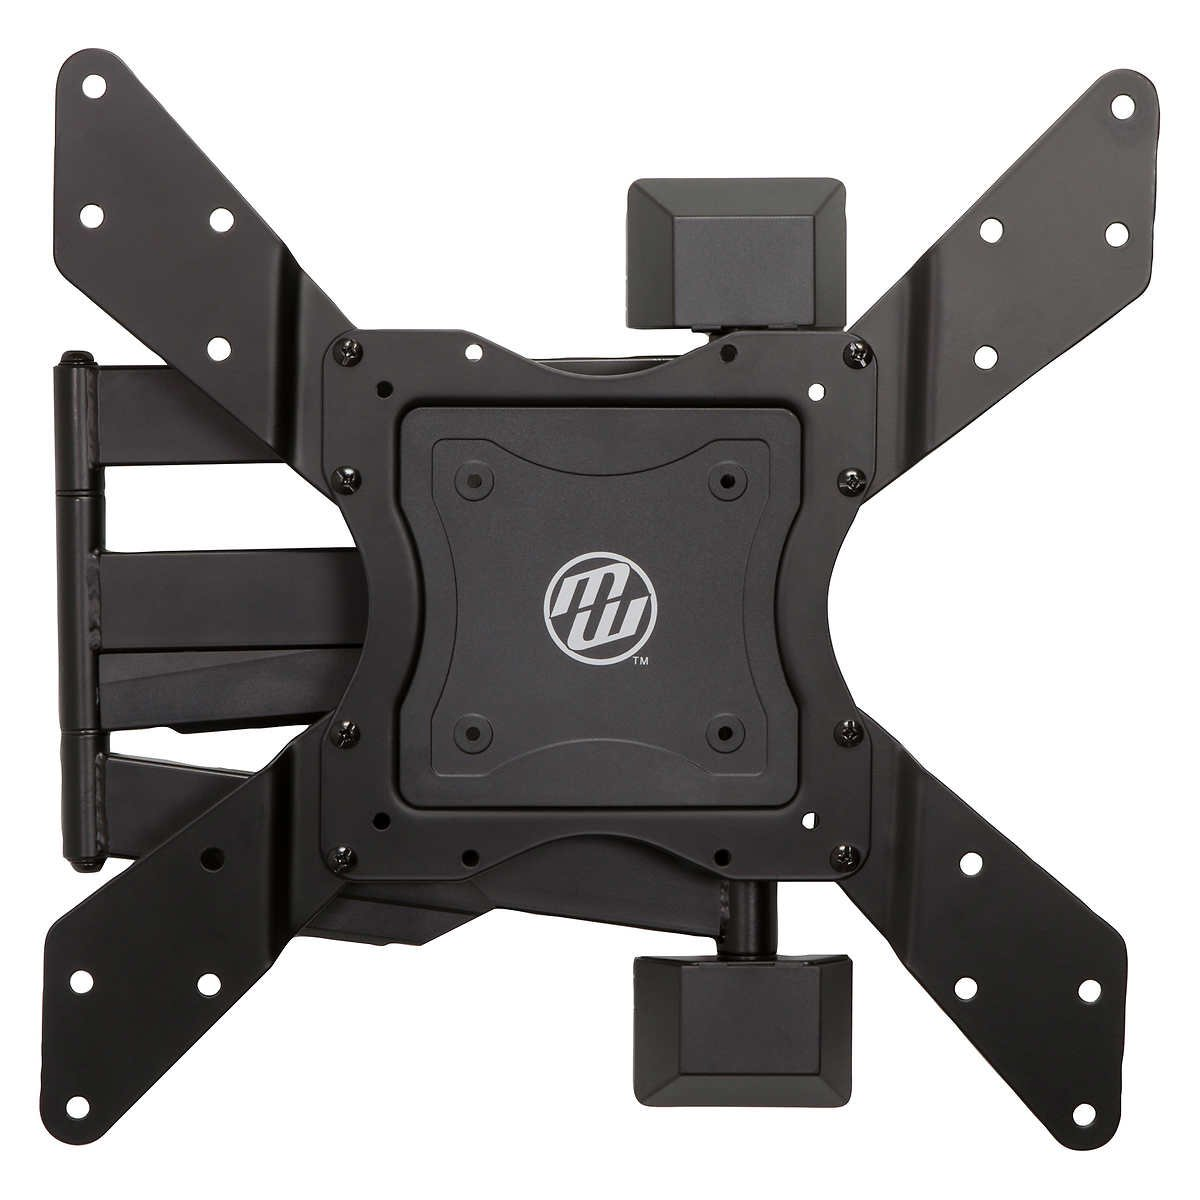 TOUGH RELIABLE MW Mounts 24'' - 60'' Full-Motion TV Mount Can Handle Units Weighing up to 70 lbs Extends 2.3'' to 21.2'' From Wall Tilt Adjustment -10 ̊ / +3 ̊. - Perfect For Watching TV